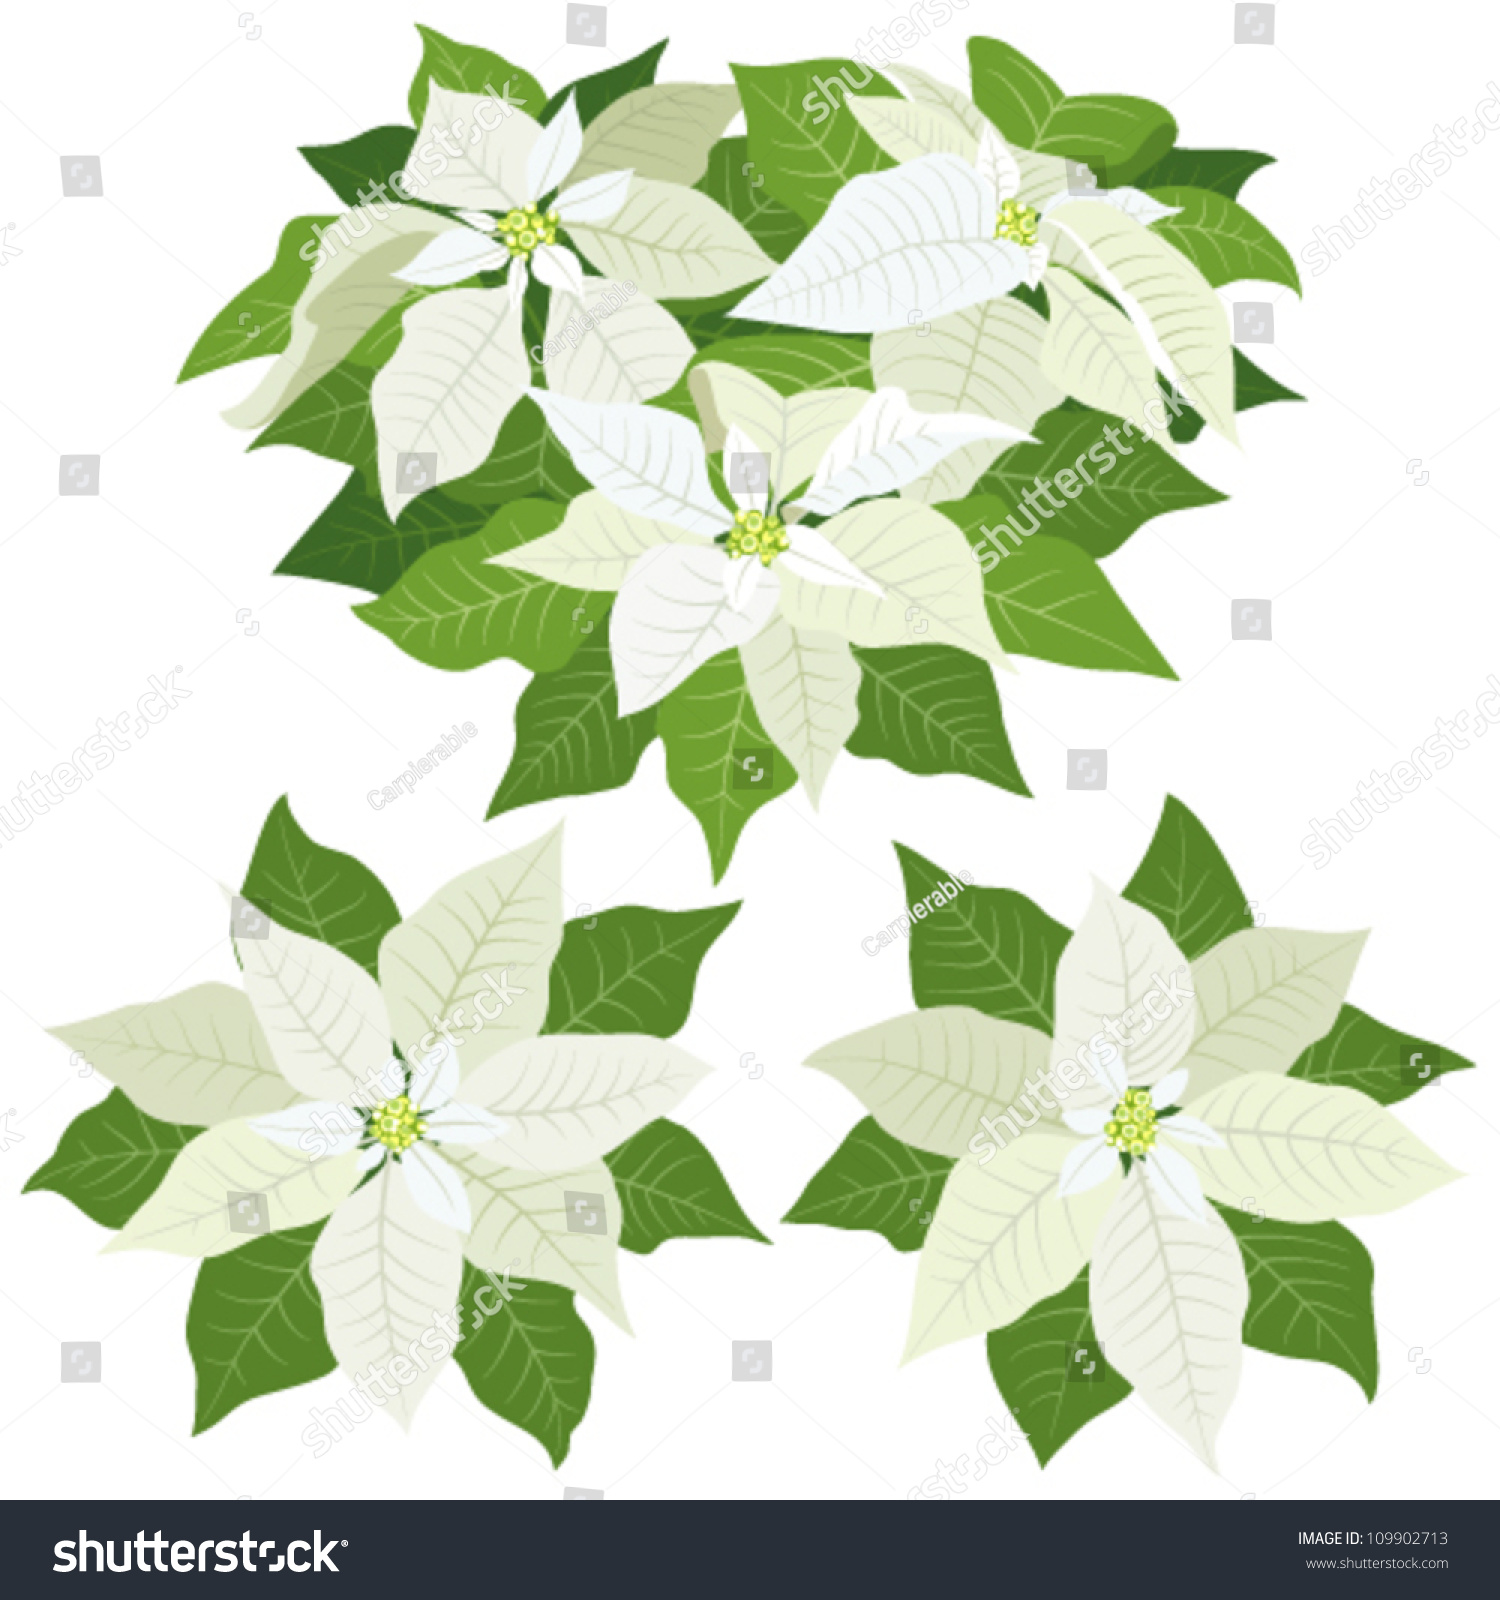 white poinsettia flowers for christmas decorations on white background - White Christmas Flower Decorations